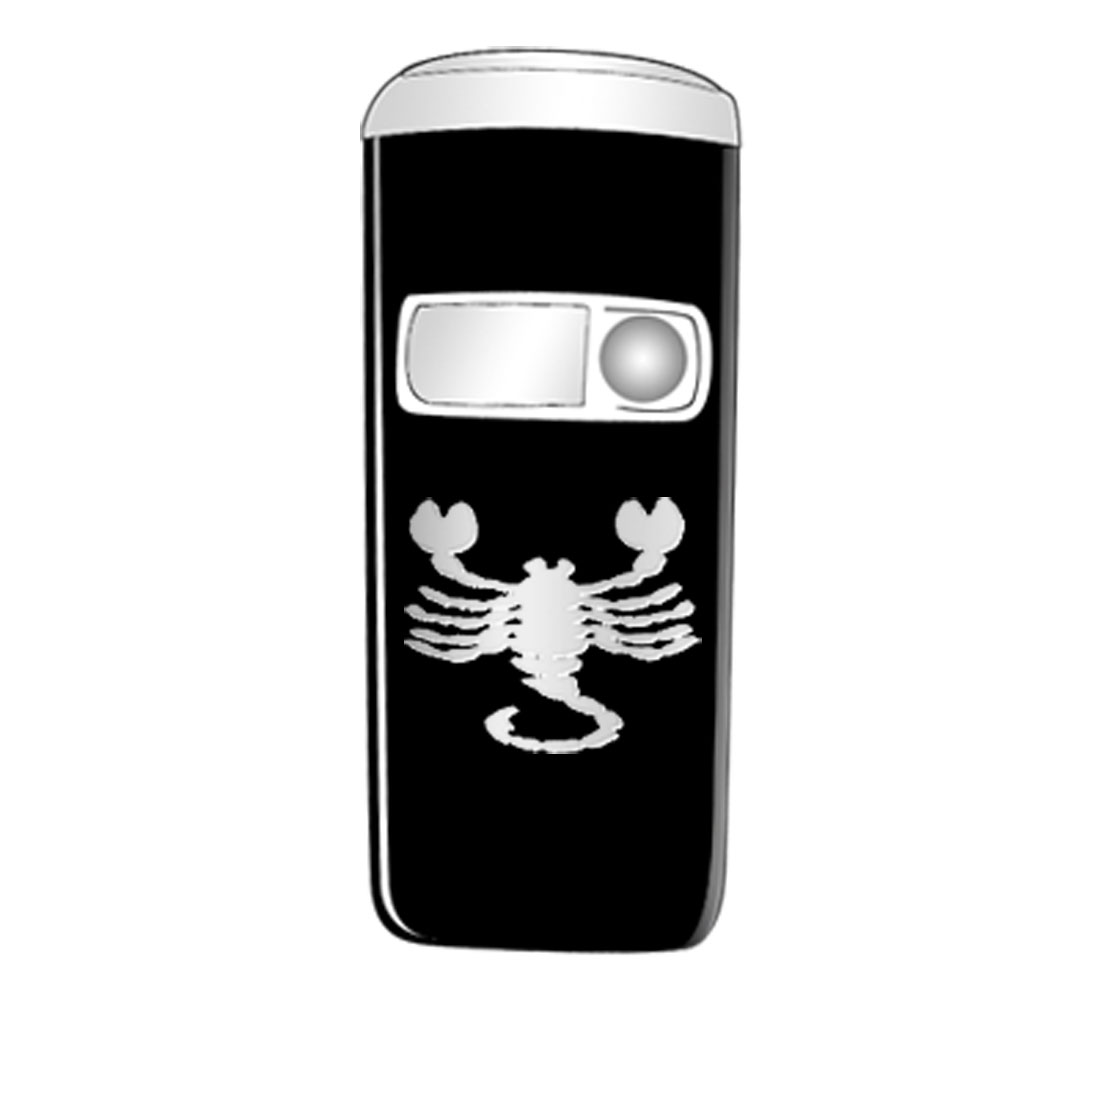 Metallic Sticker for Smartphone NDS MP4 - Scorpio